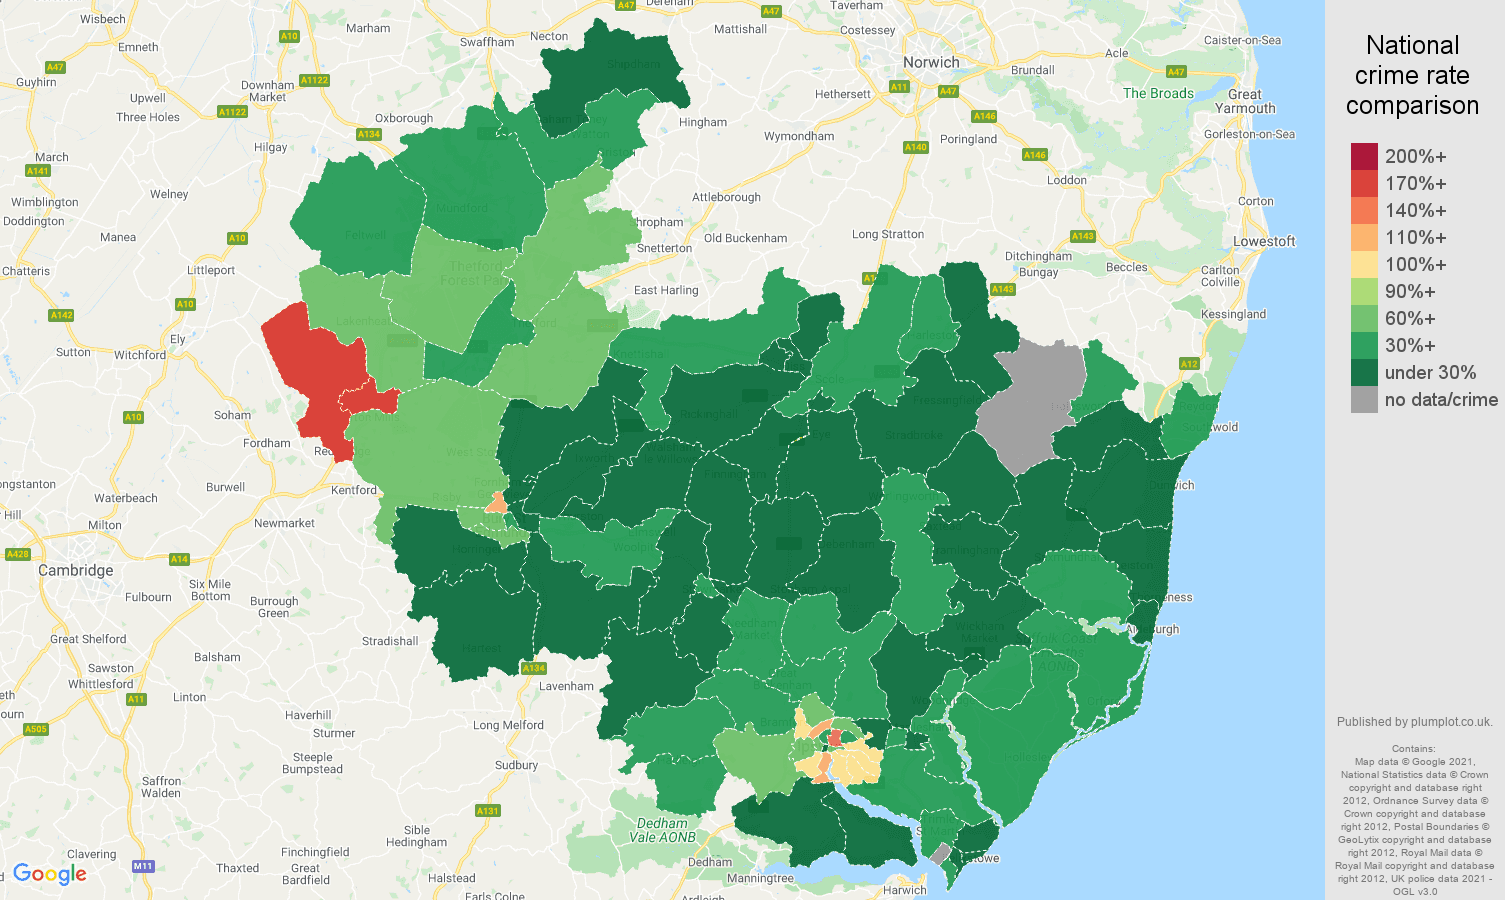 Ipswich vehicle crime rate comparison map